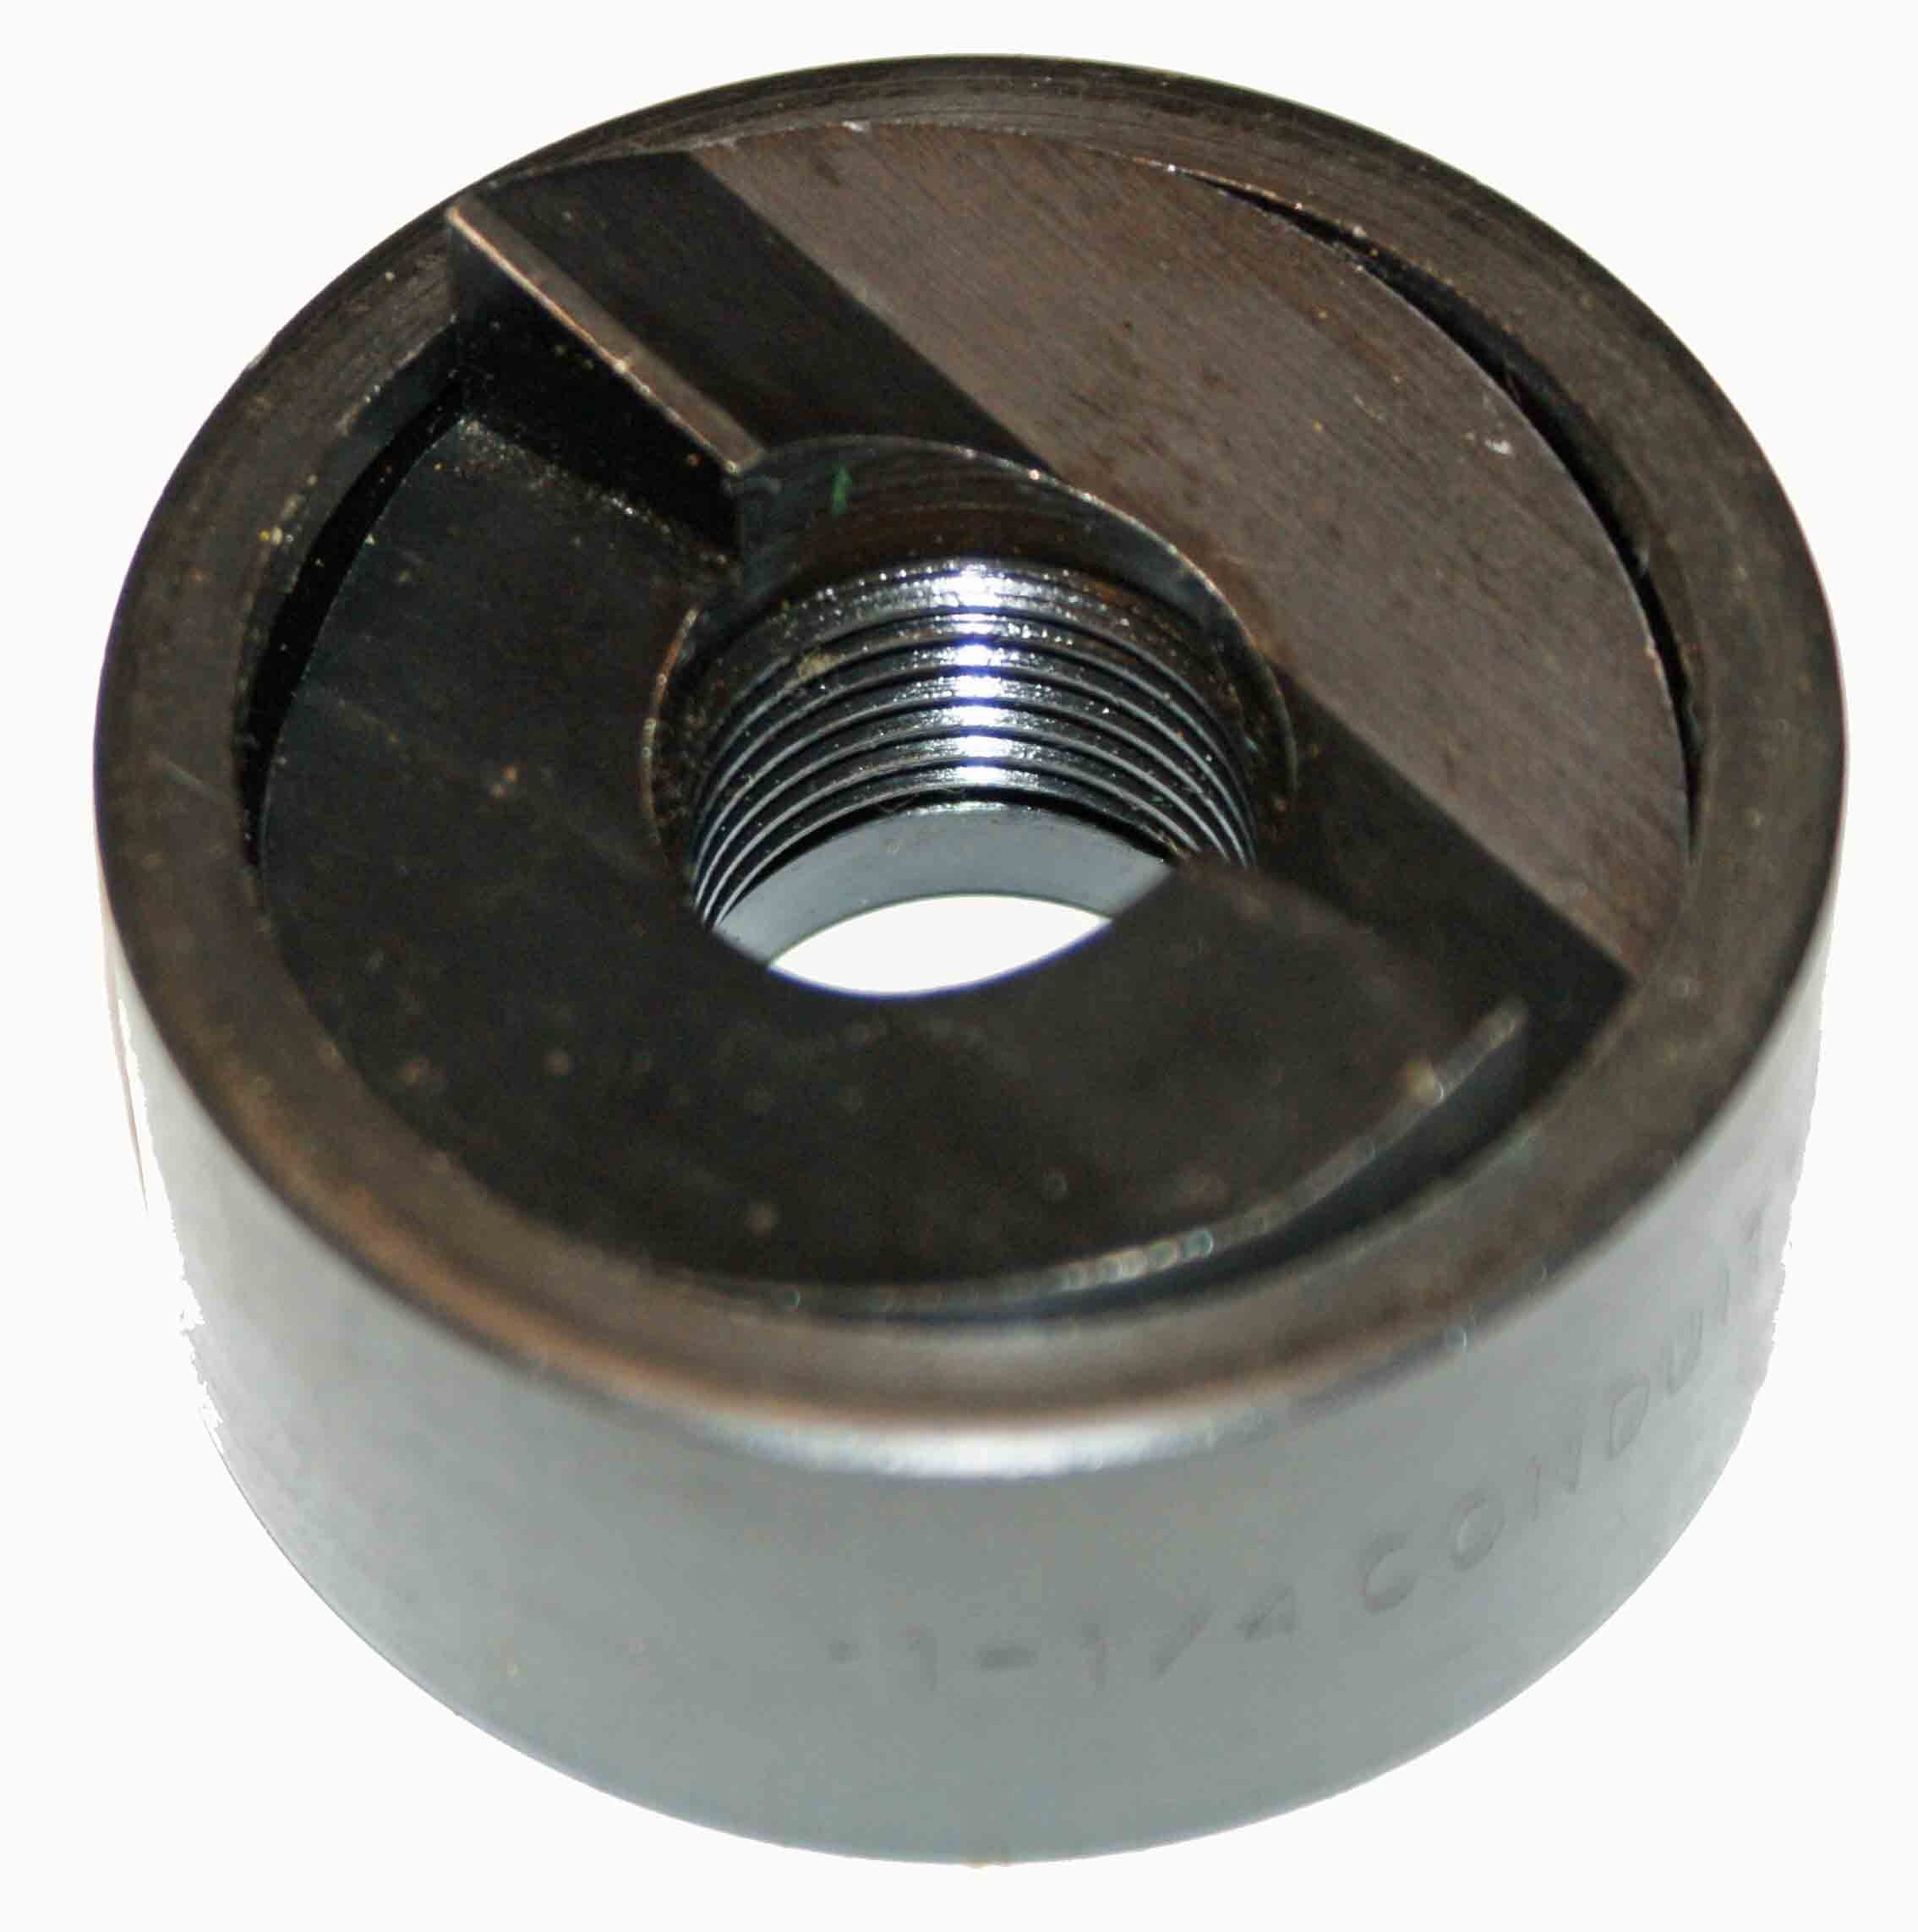 "Greenlee 721-1-1/4"" Conduit Size Punch - Die"